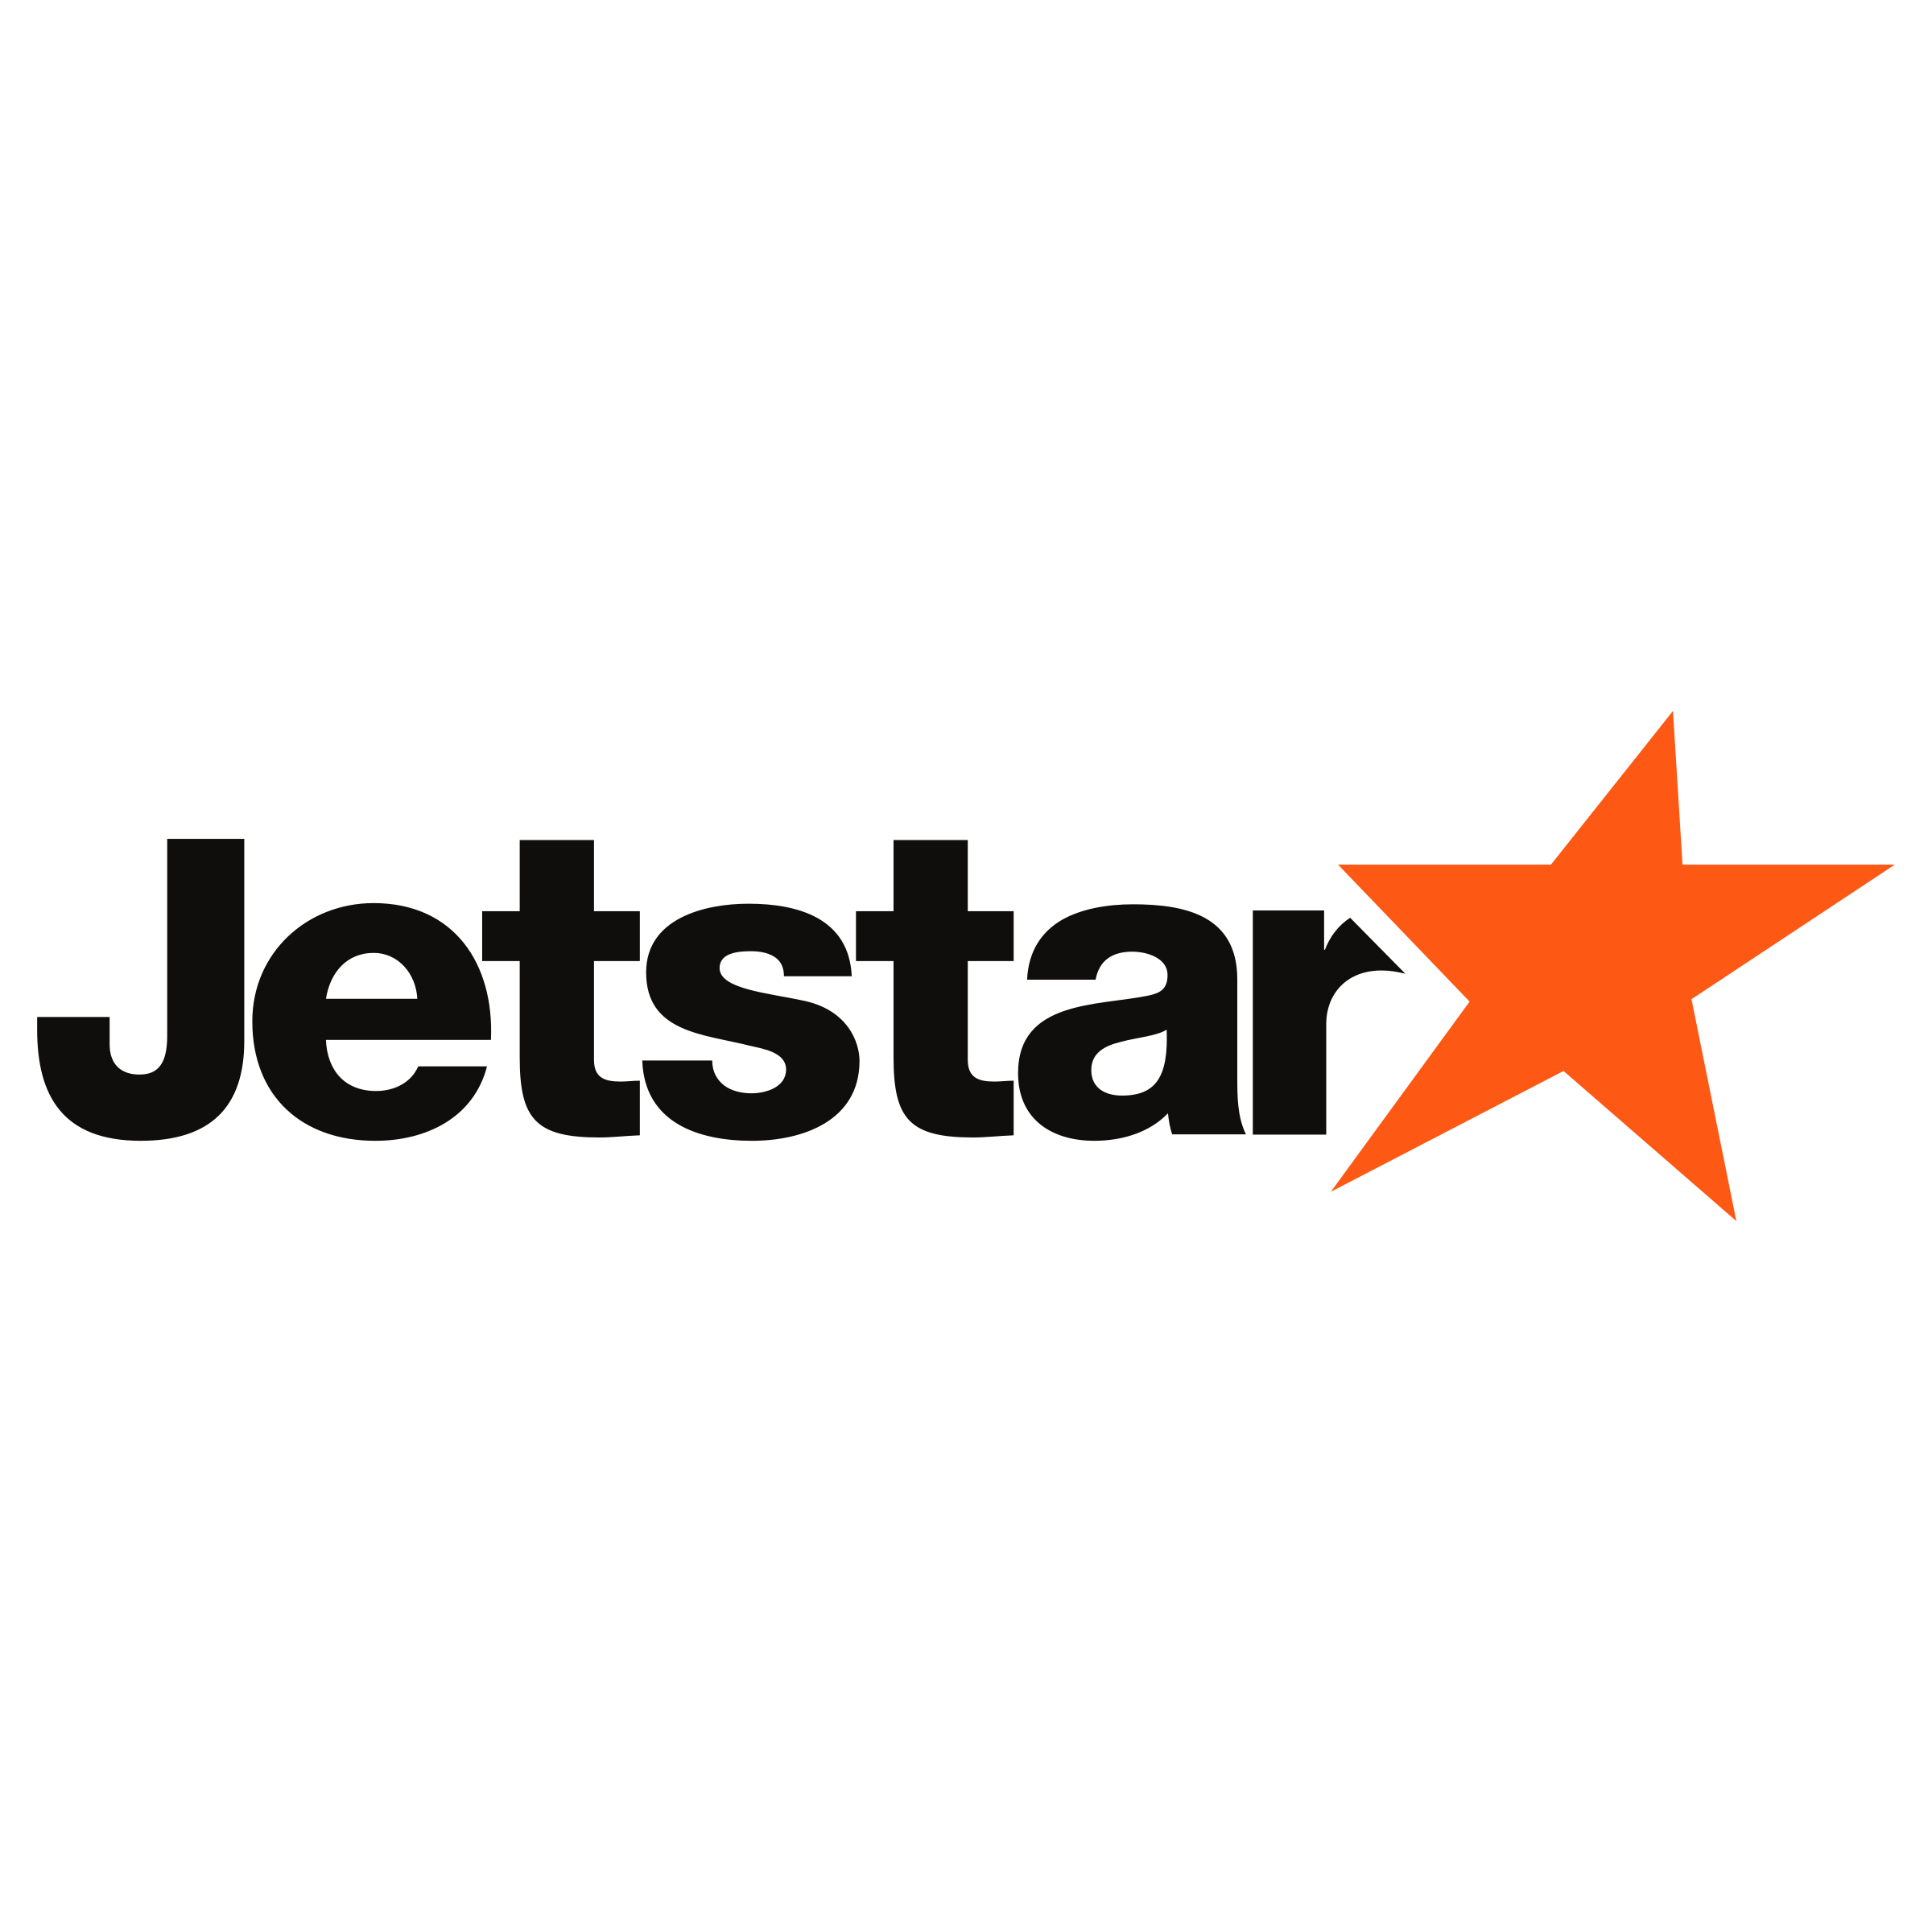 https://freightquip.com/production/wp-content/uploads/2020/07/Jetstar-Logo.jpg